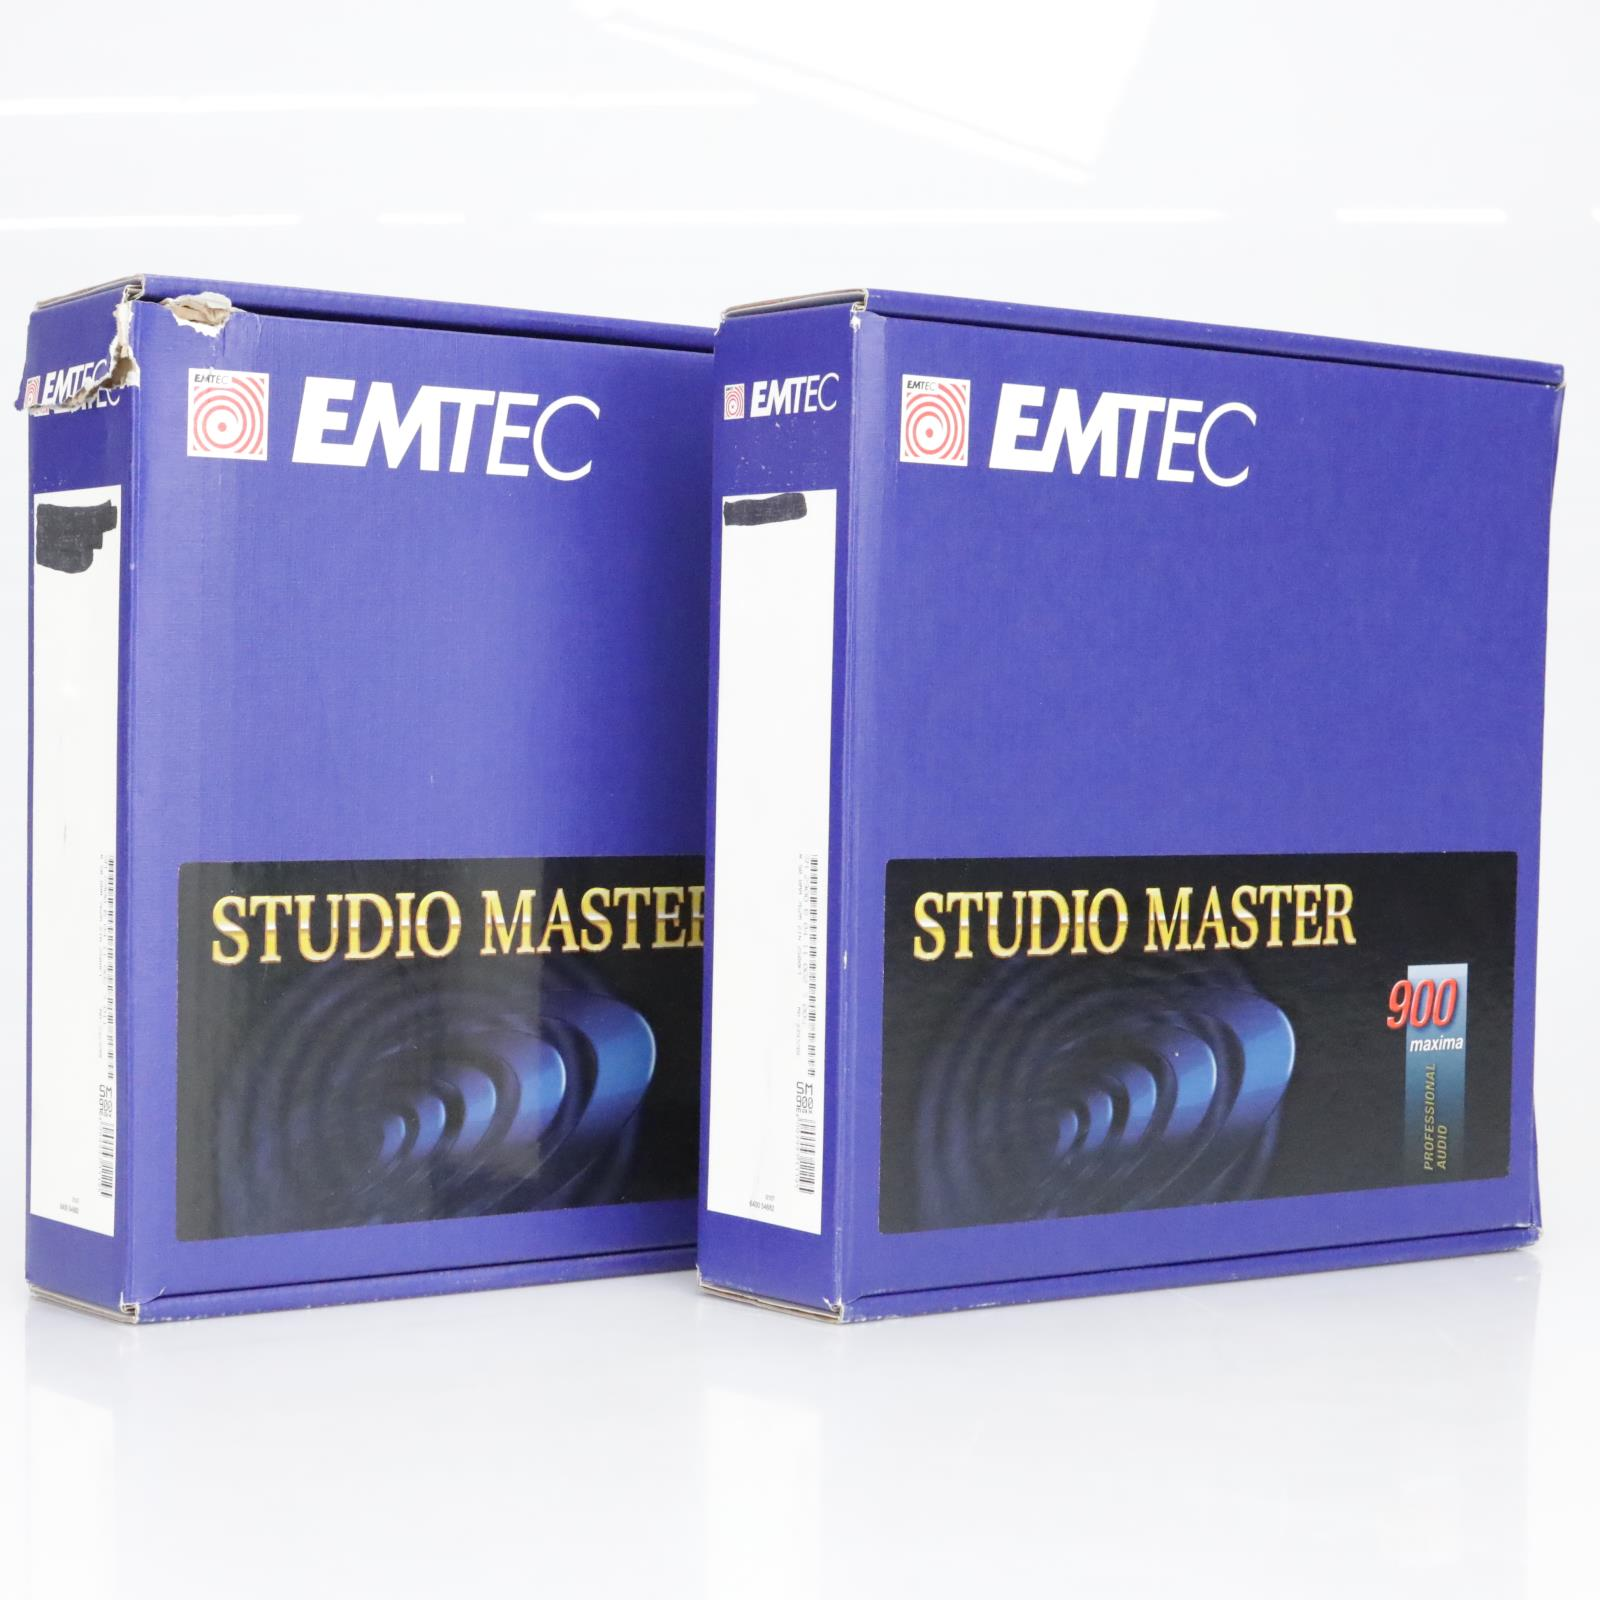 "2 EMTEC Studio Mastering Tape SM 900 Max 2"" 2500' Single Pass NAB Reel #38913"